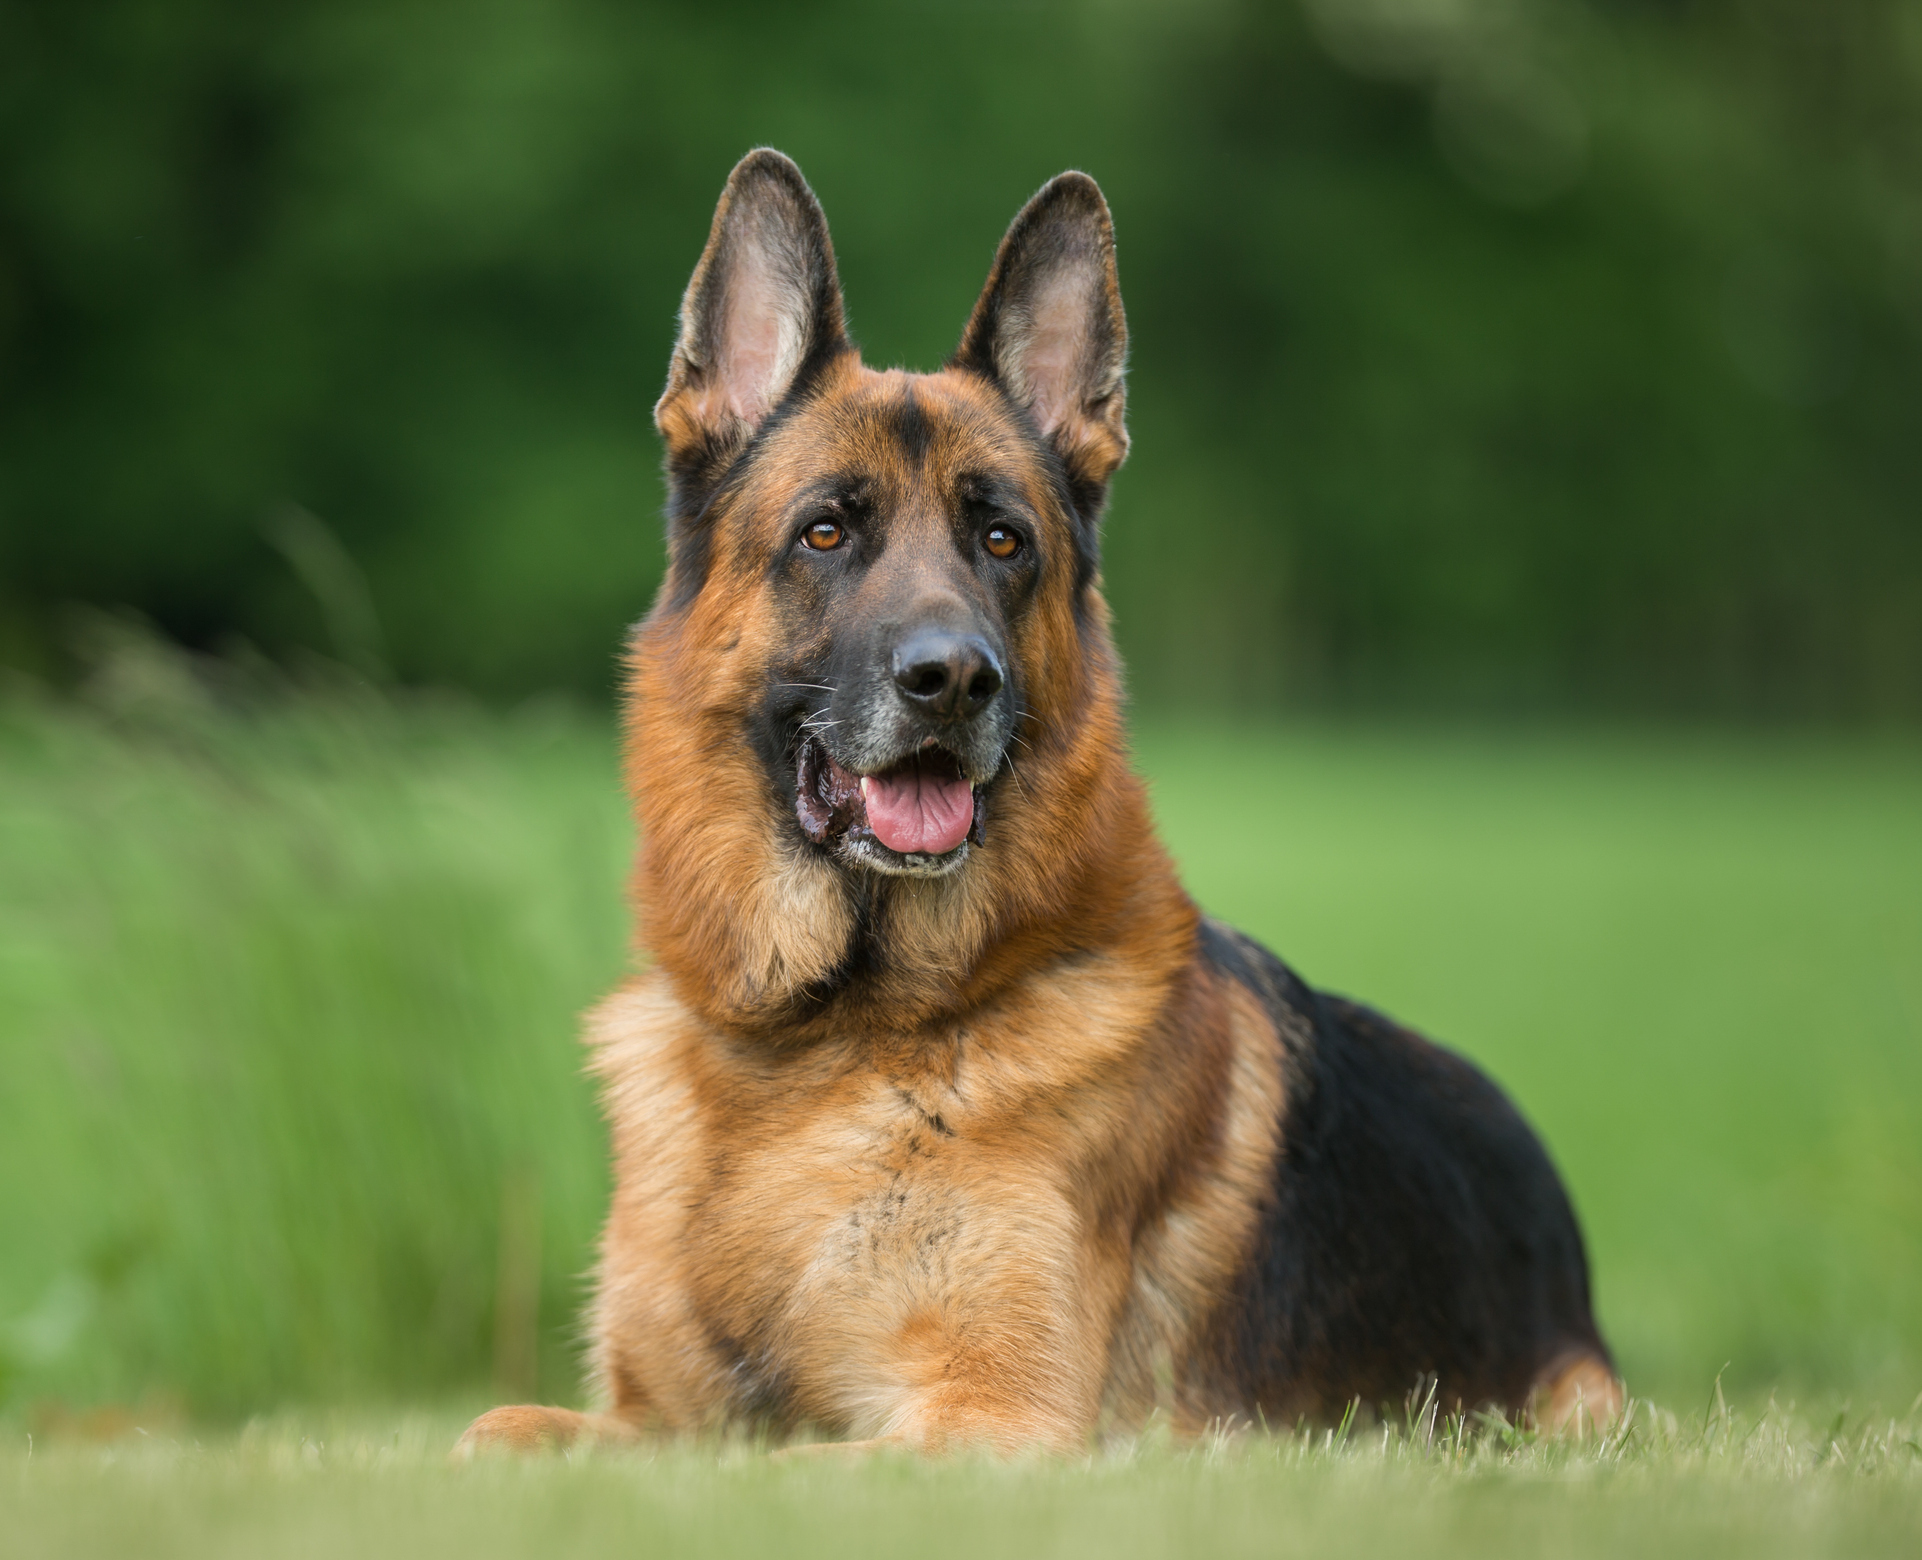 Baby Mauled to Death by Parent's Pet German Shepherd